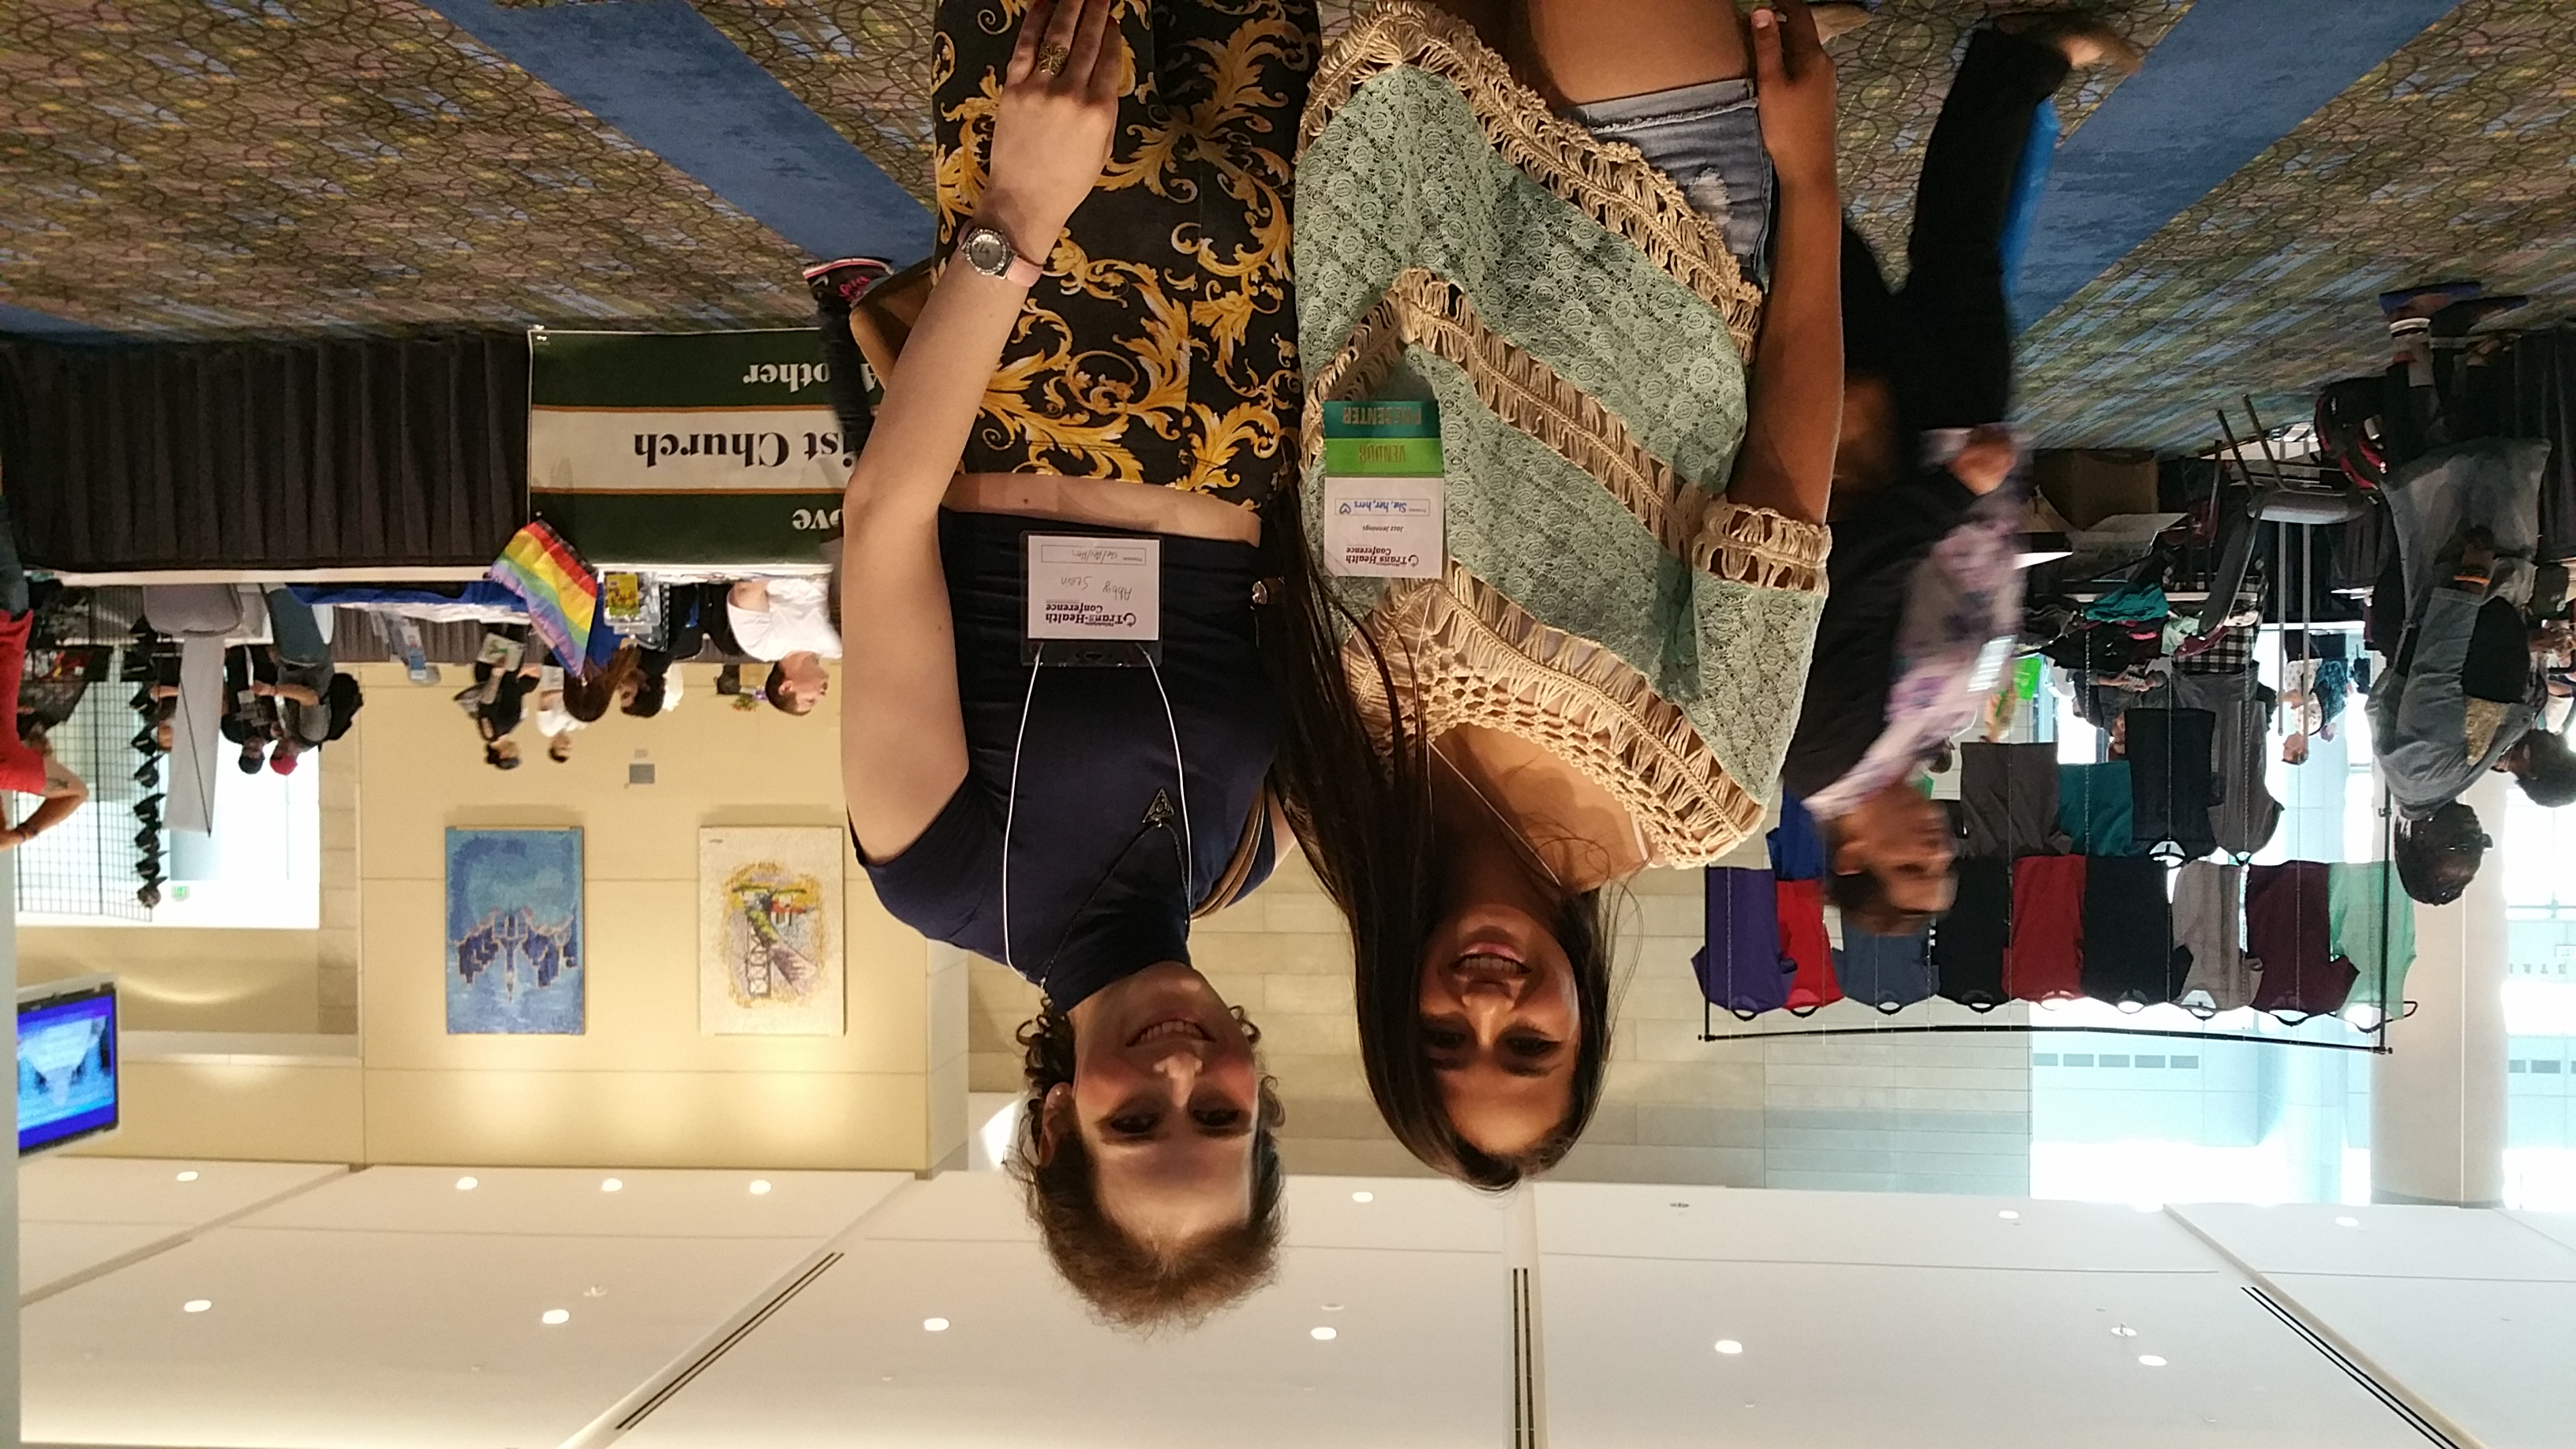 abby stein and jazz jennings at the philadelphia trans health conference.jpg